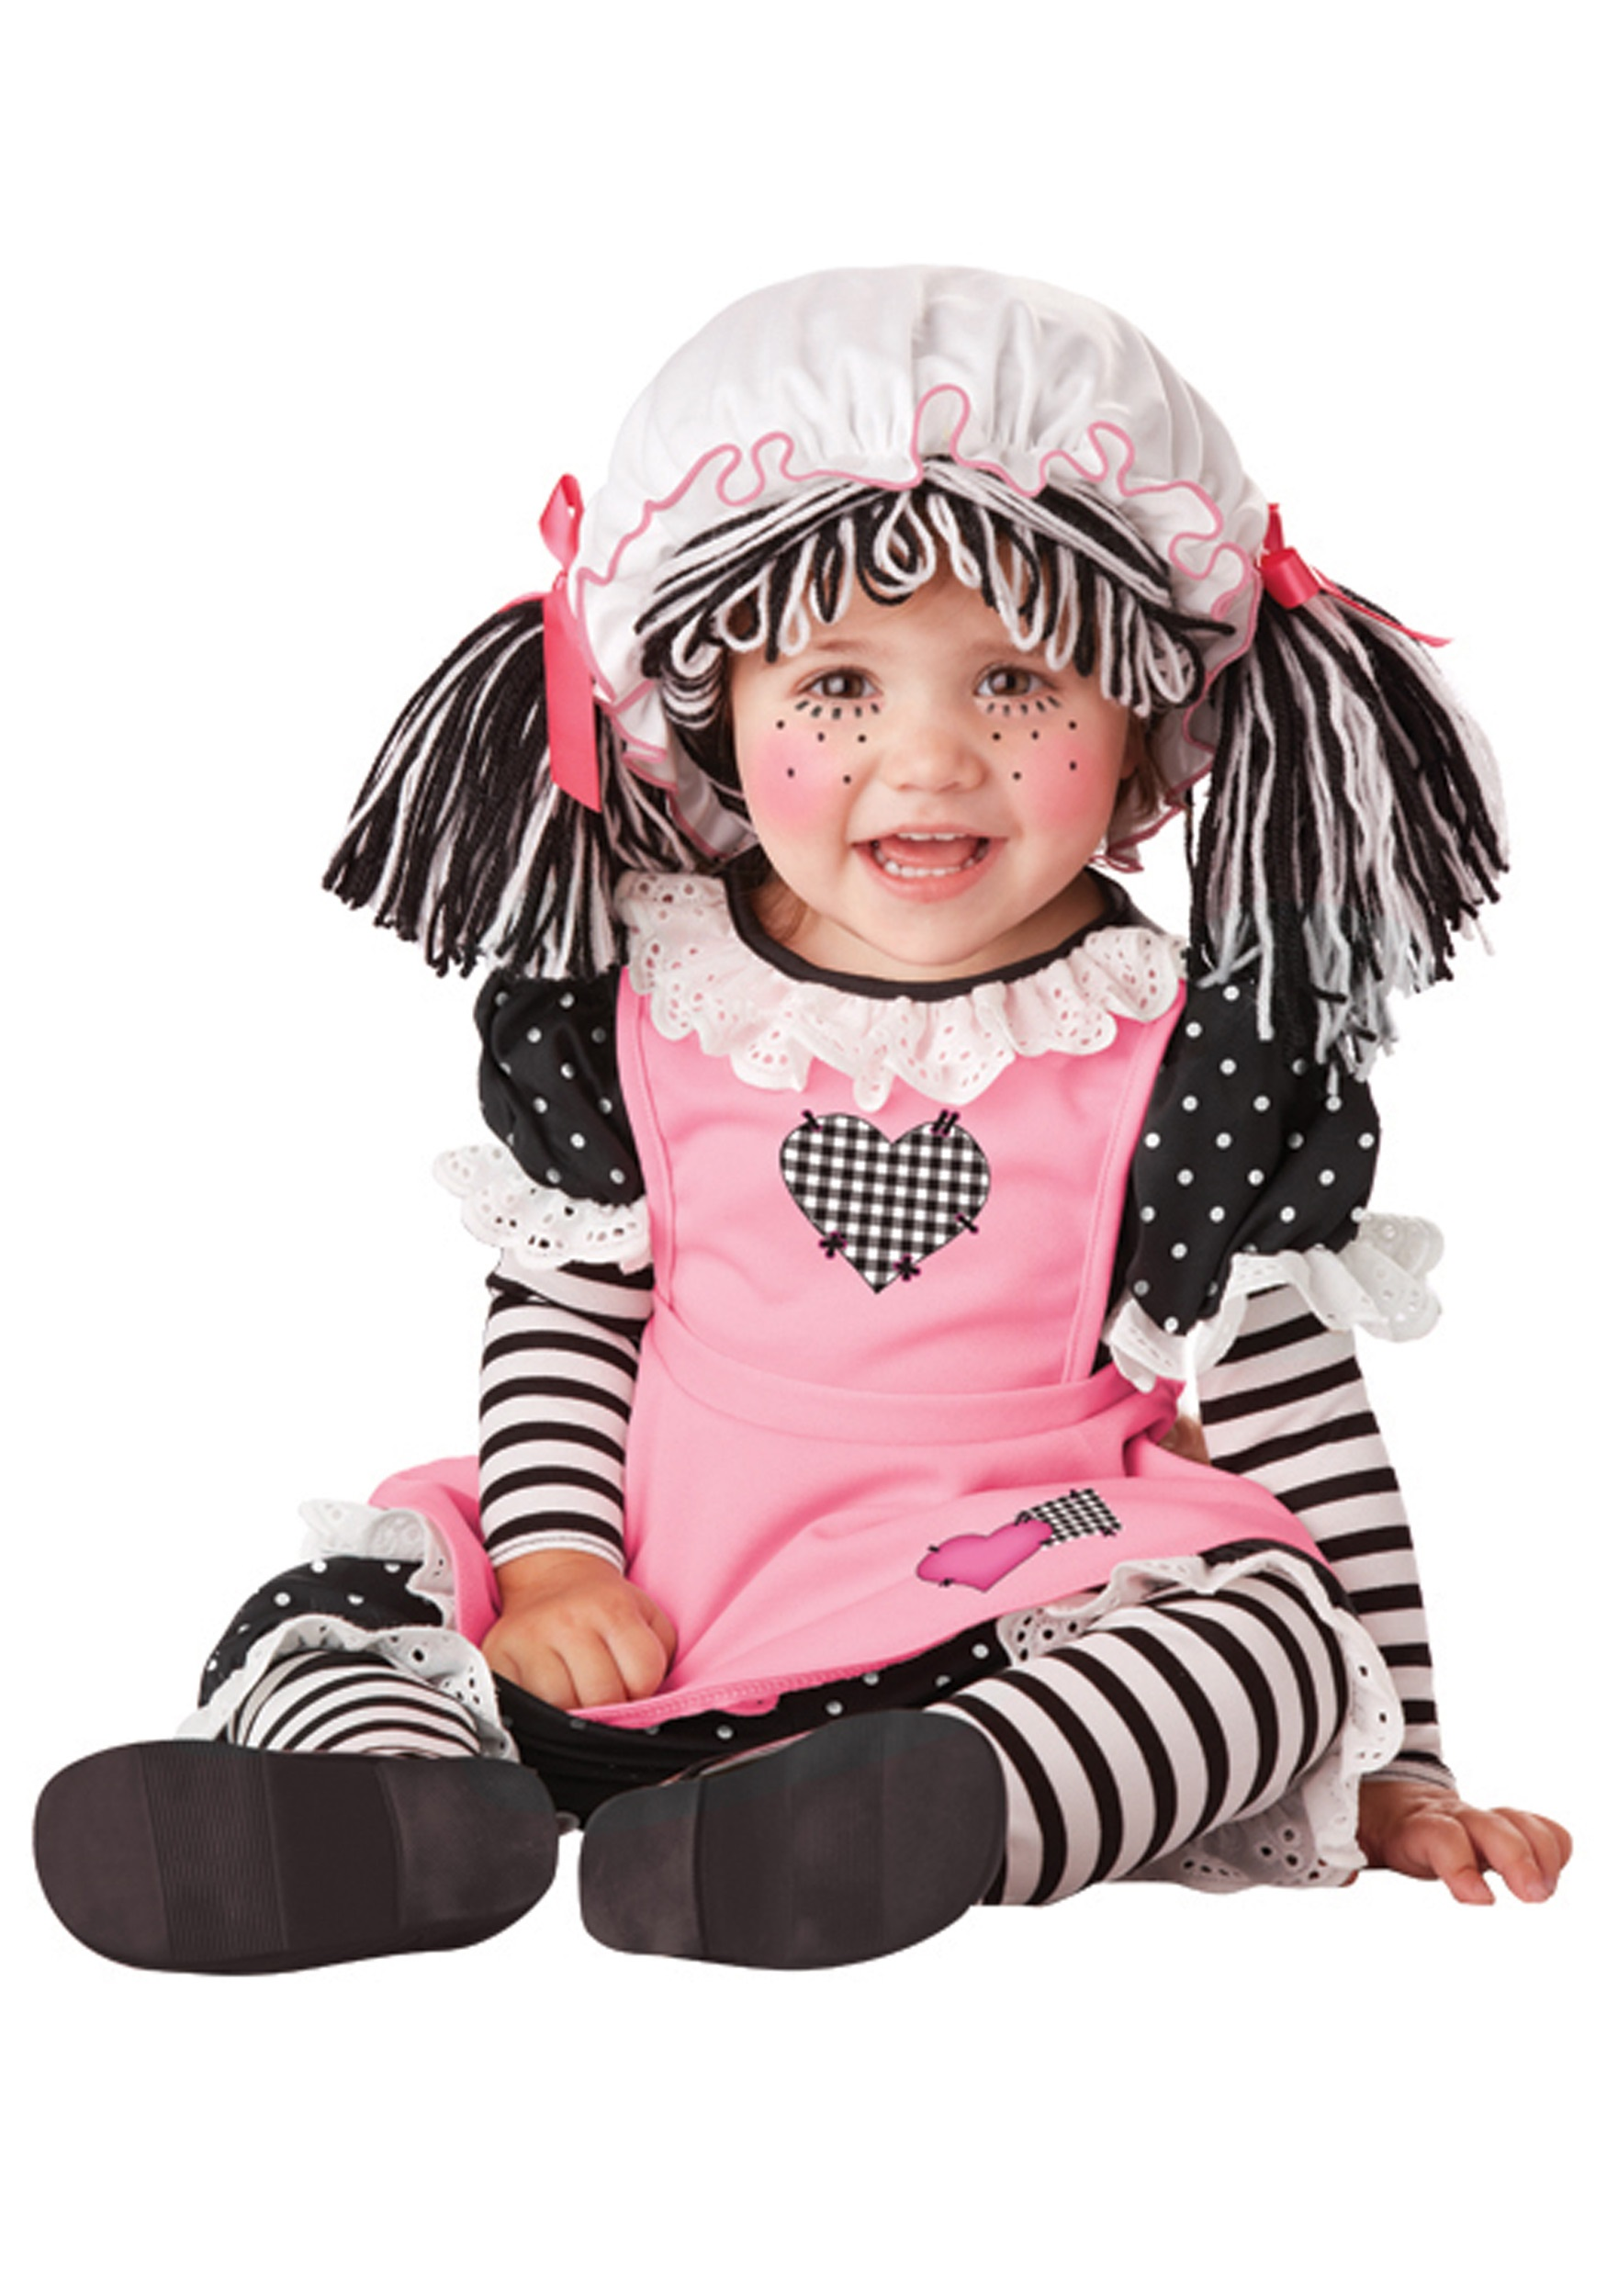 Baby Halloween Costumes. Your baby's first Halloween is an important event. It's a small glance into a future that involves years of trick-or-treating, picking out costumes and watching beloved Halloween movies and specials on TV as you devour your favorite sweet treats.